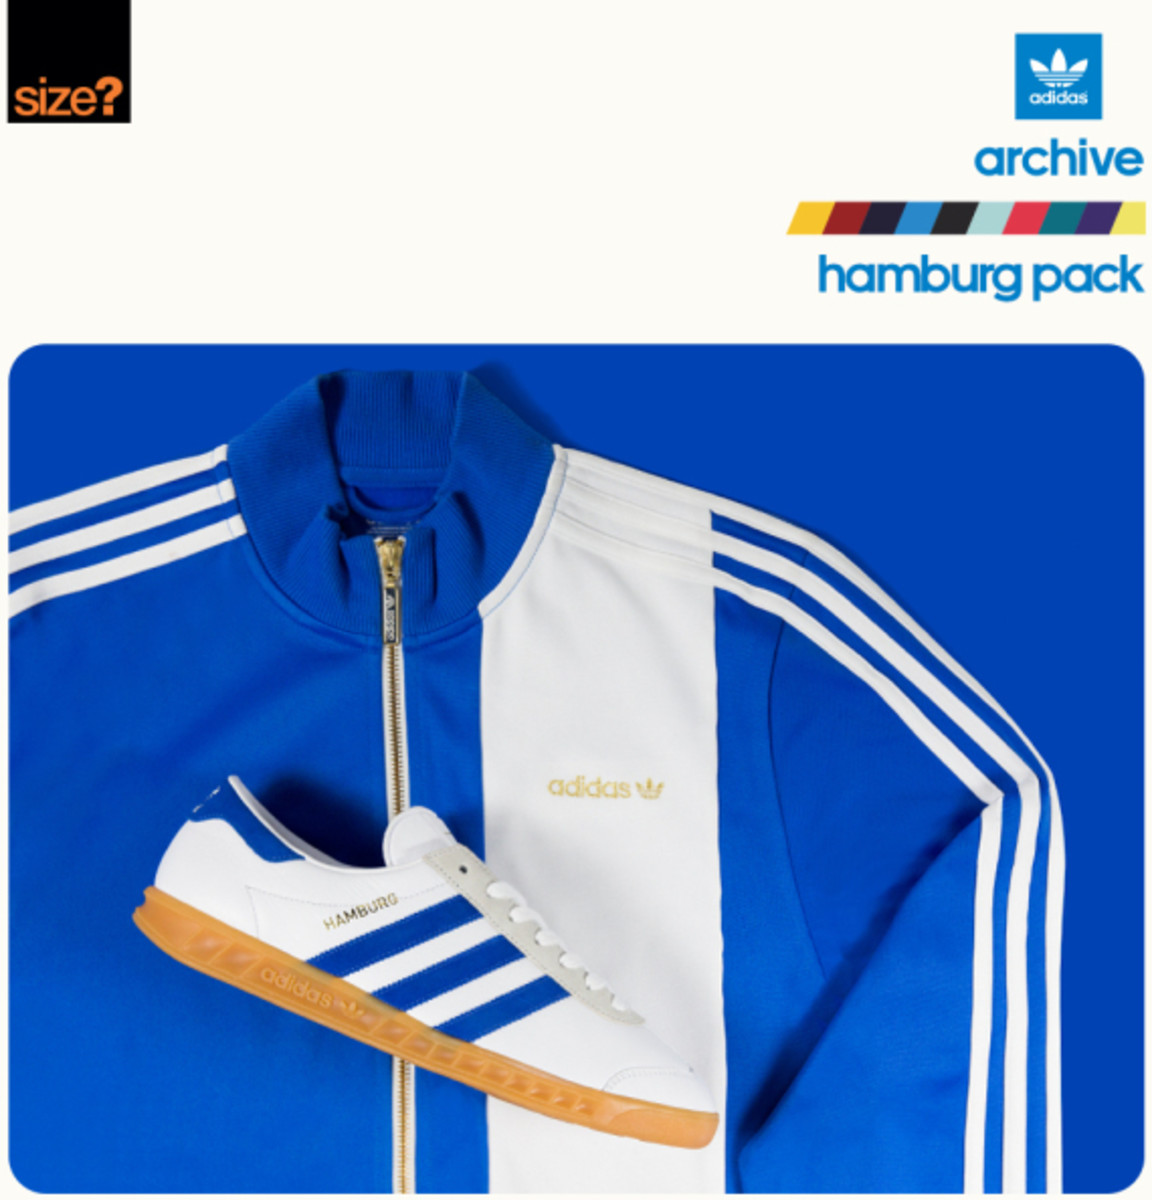 adidas-originals-hamburg-pack-size-exclusive-02